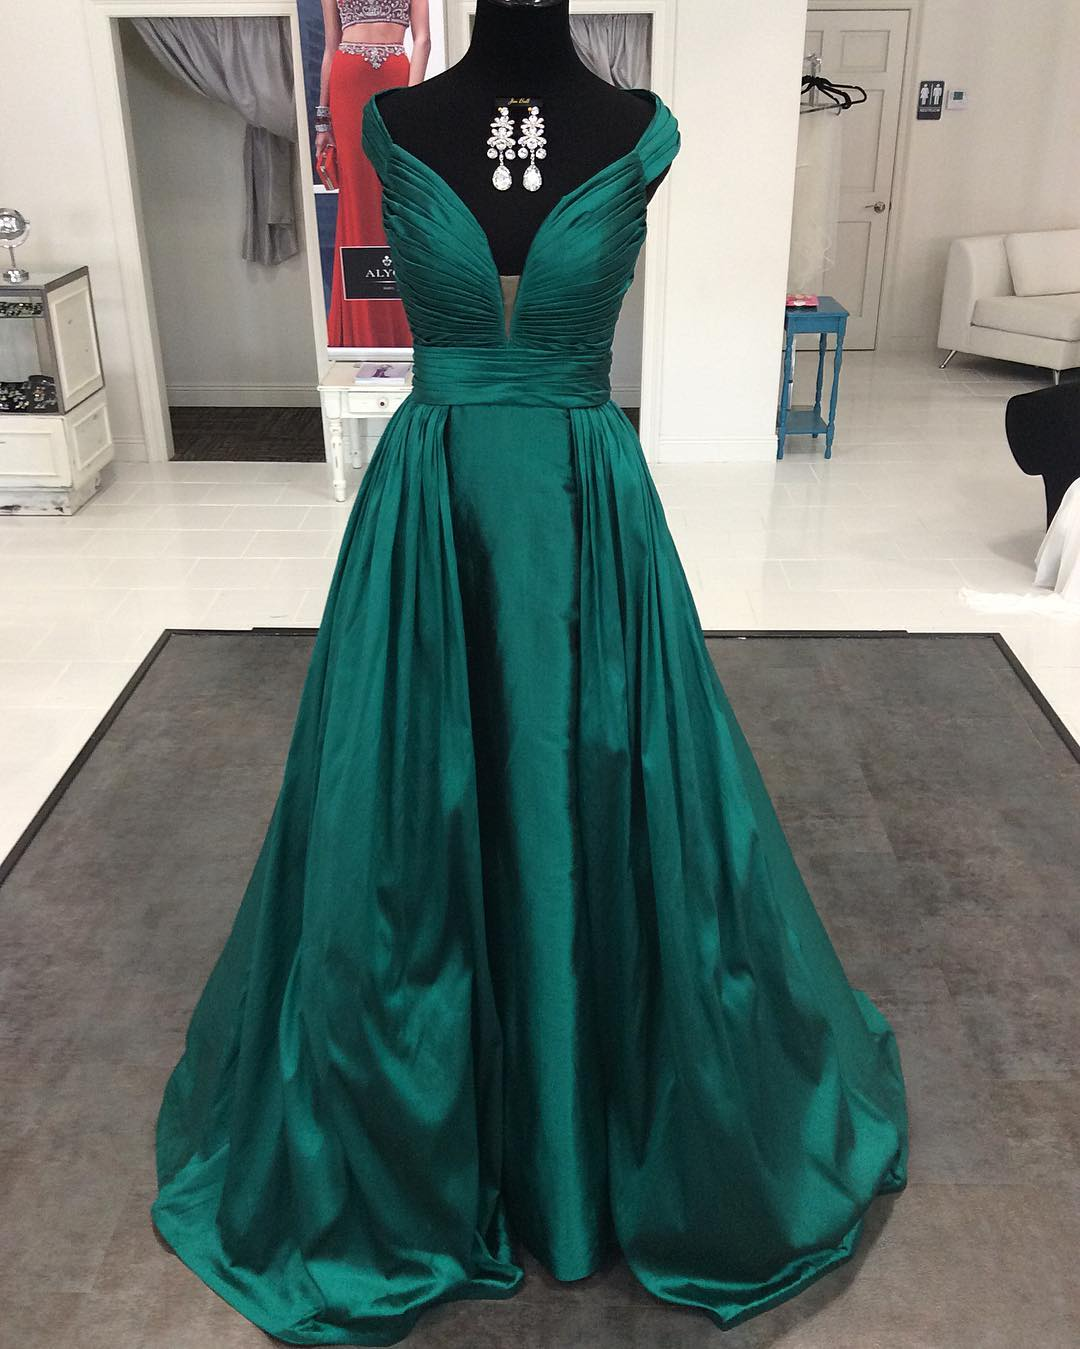 06edfc004da948 Emerald Green Satin Long Dark Green Formal Evening/Prom Dresses on Storenvy